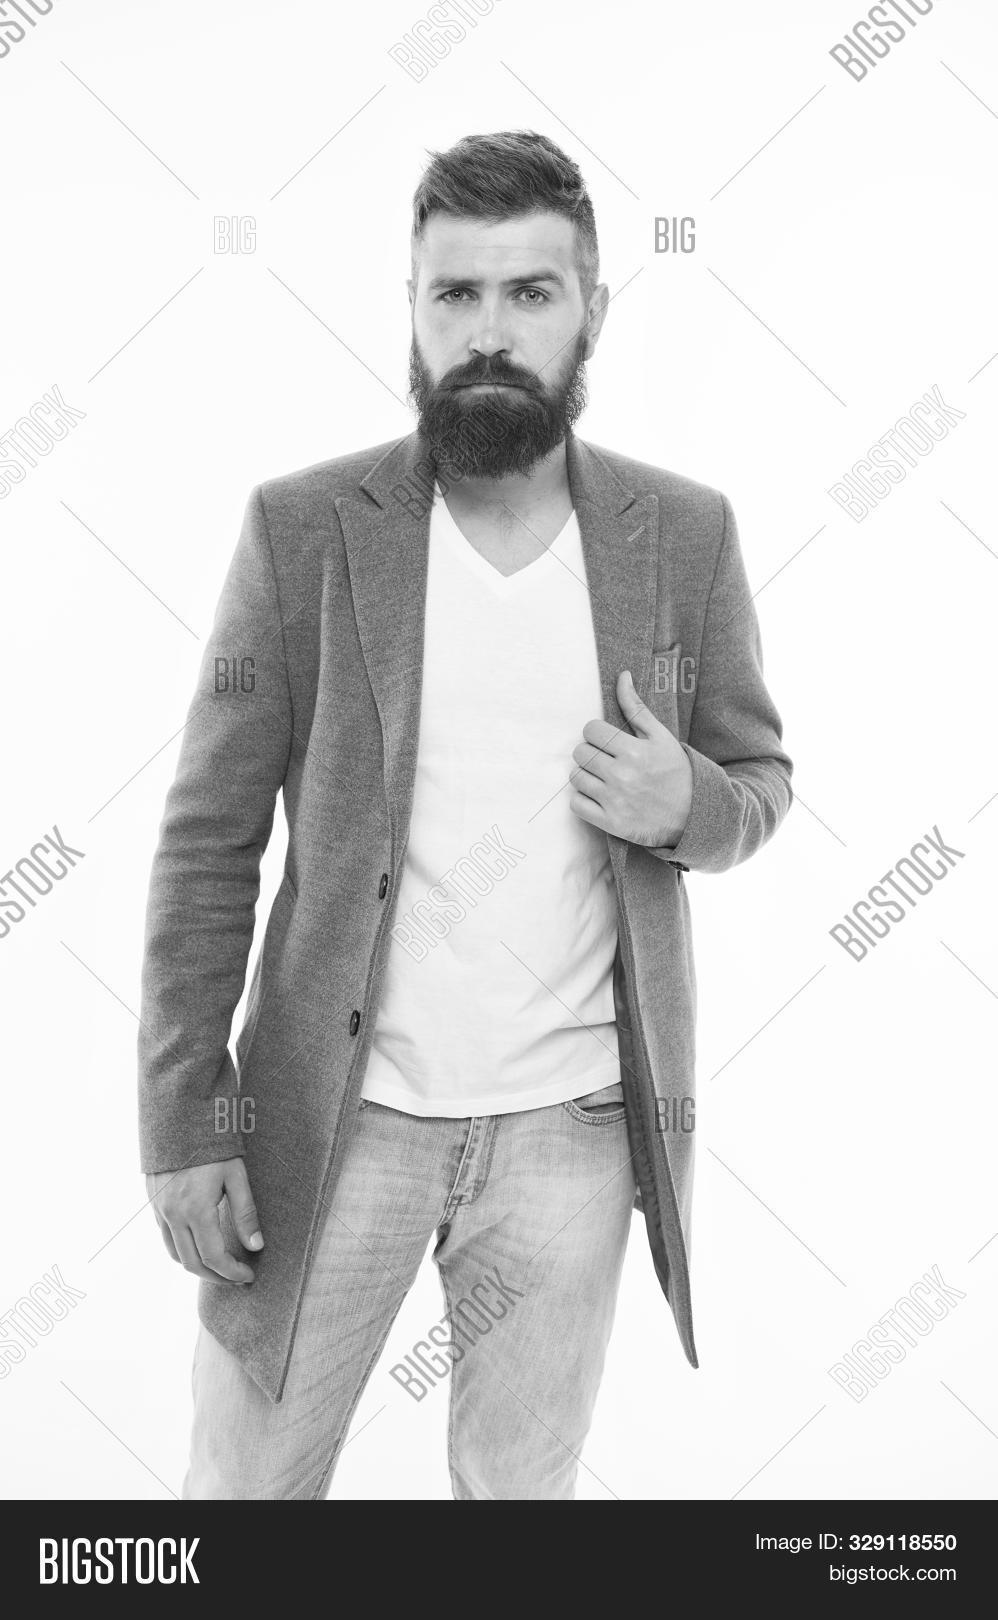 any,background,barber,beard,bearded,brutal,casual,clothes,clothing,coat,comfortable,concept,confident,consultation,elegant,fashion,fashionable,garment,guy,hairstyle,handsome,hipster,is,jacket,key,macho,male,man,masculine,masculinity,menswear,modern,mustache,occasion,outfit,perfect,season,simplicity,stylish,stylist,unshaven,wear